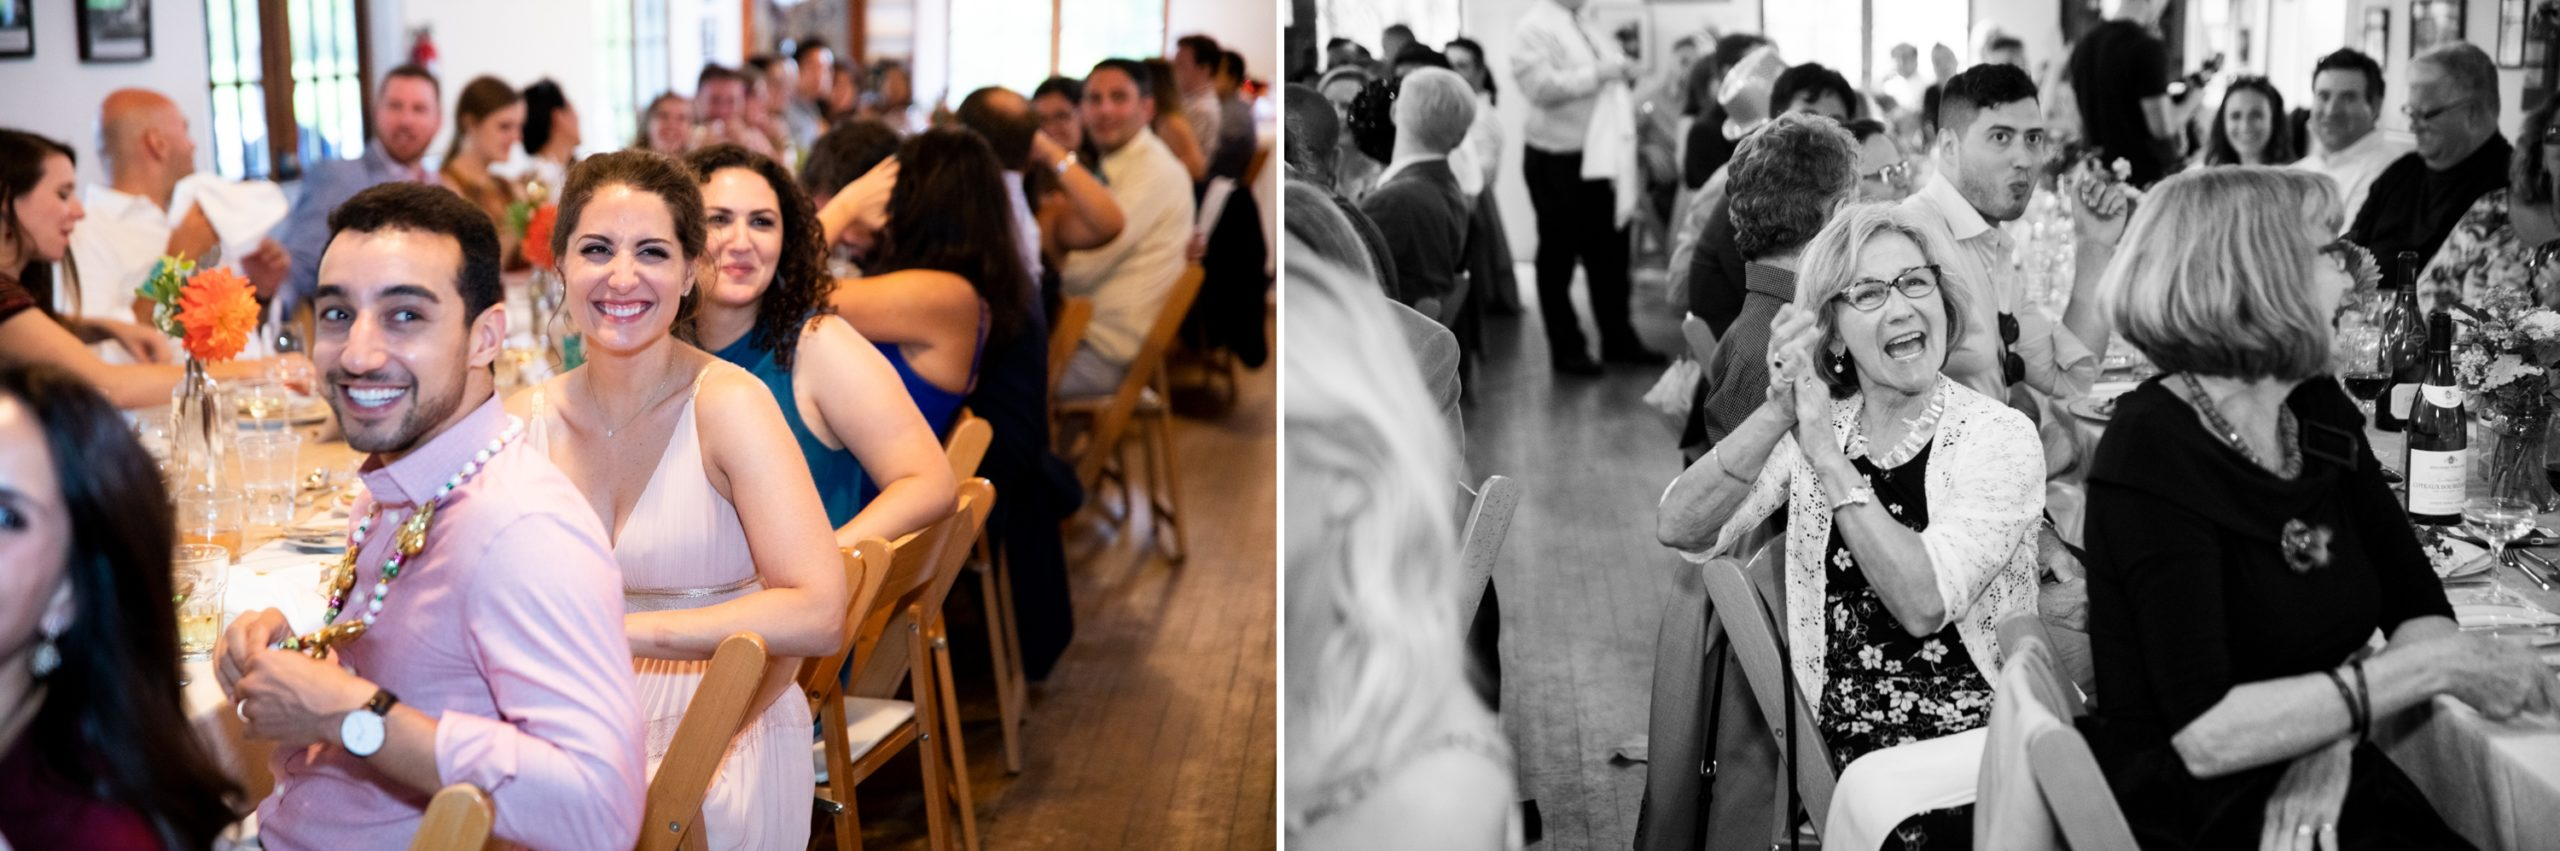 Guests Candids Toronto Ward's Island Summer Wedding Zsuzsi Pal Photography